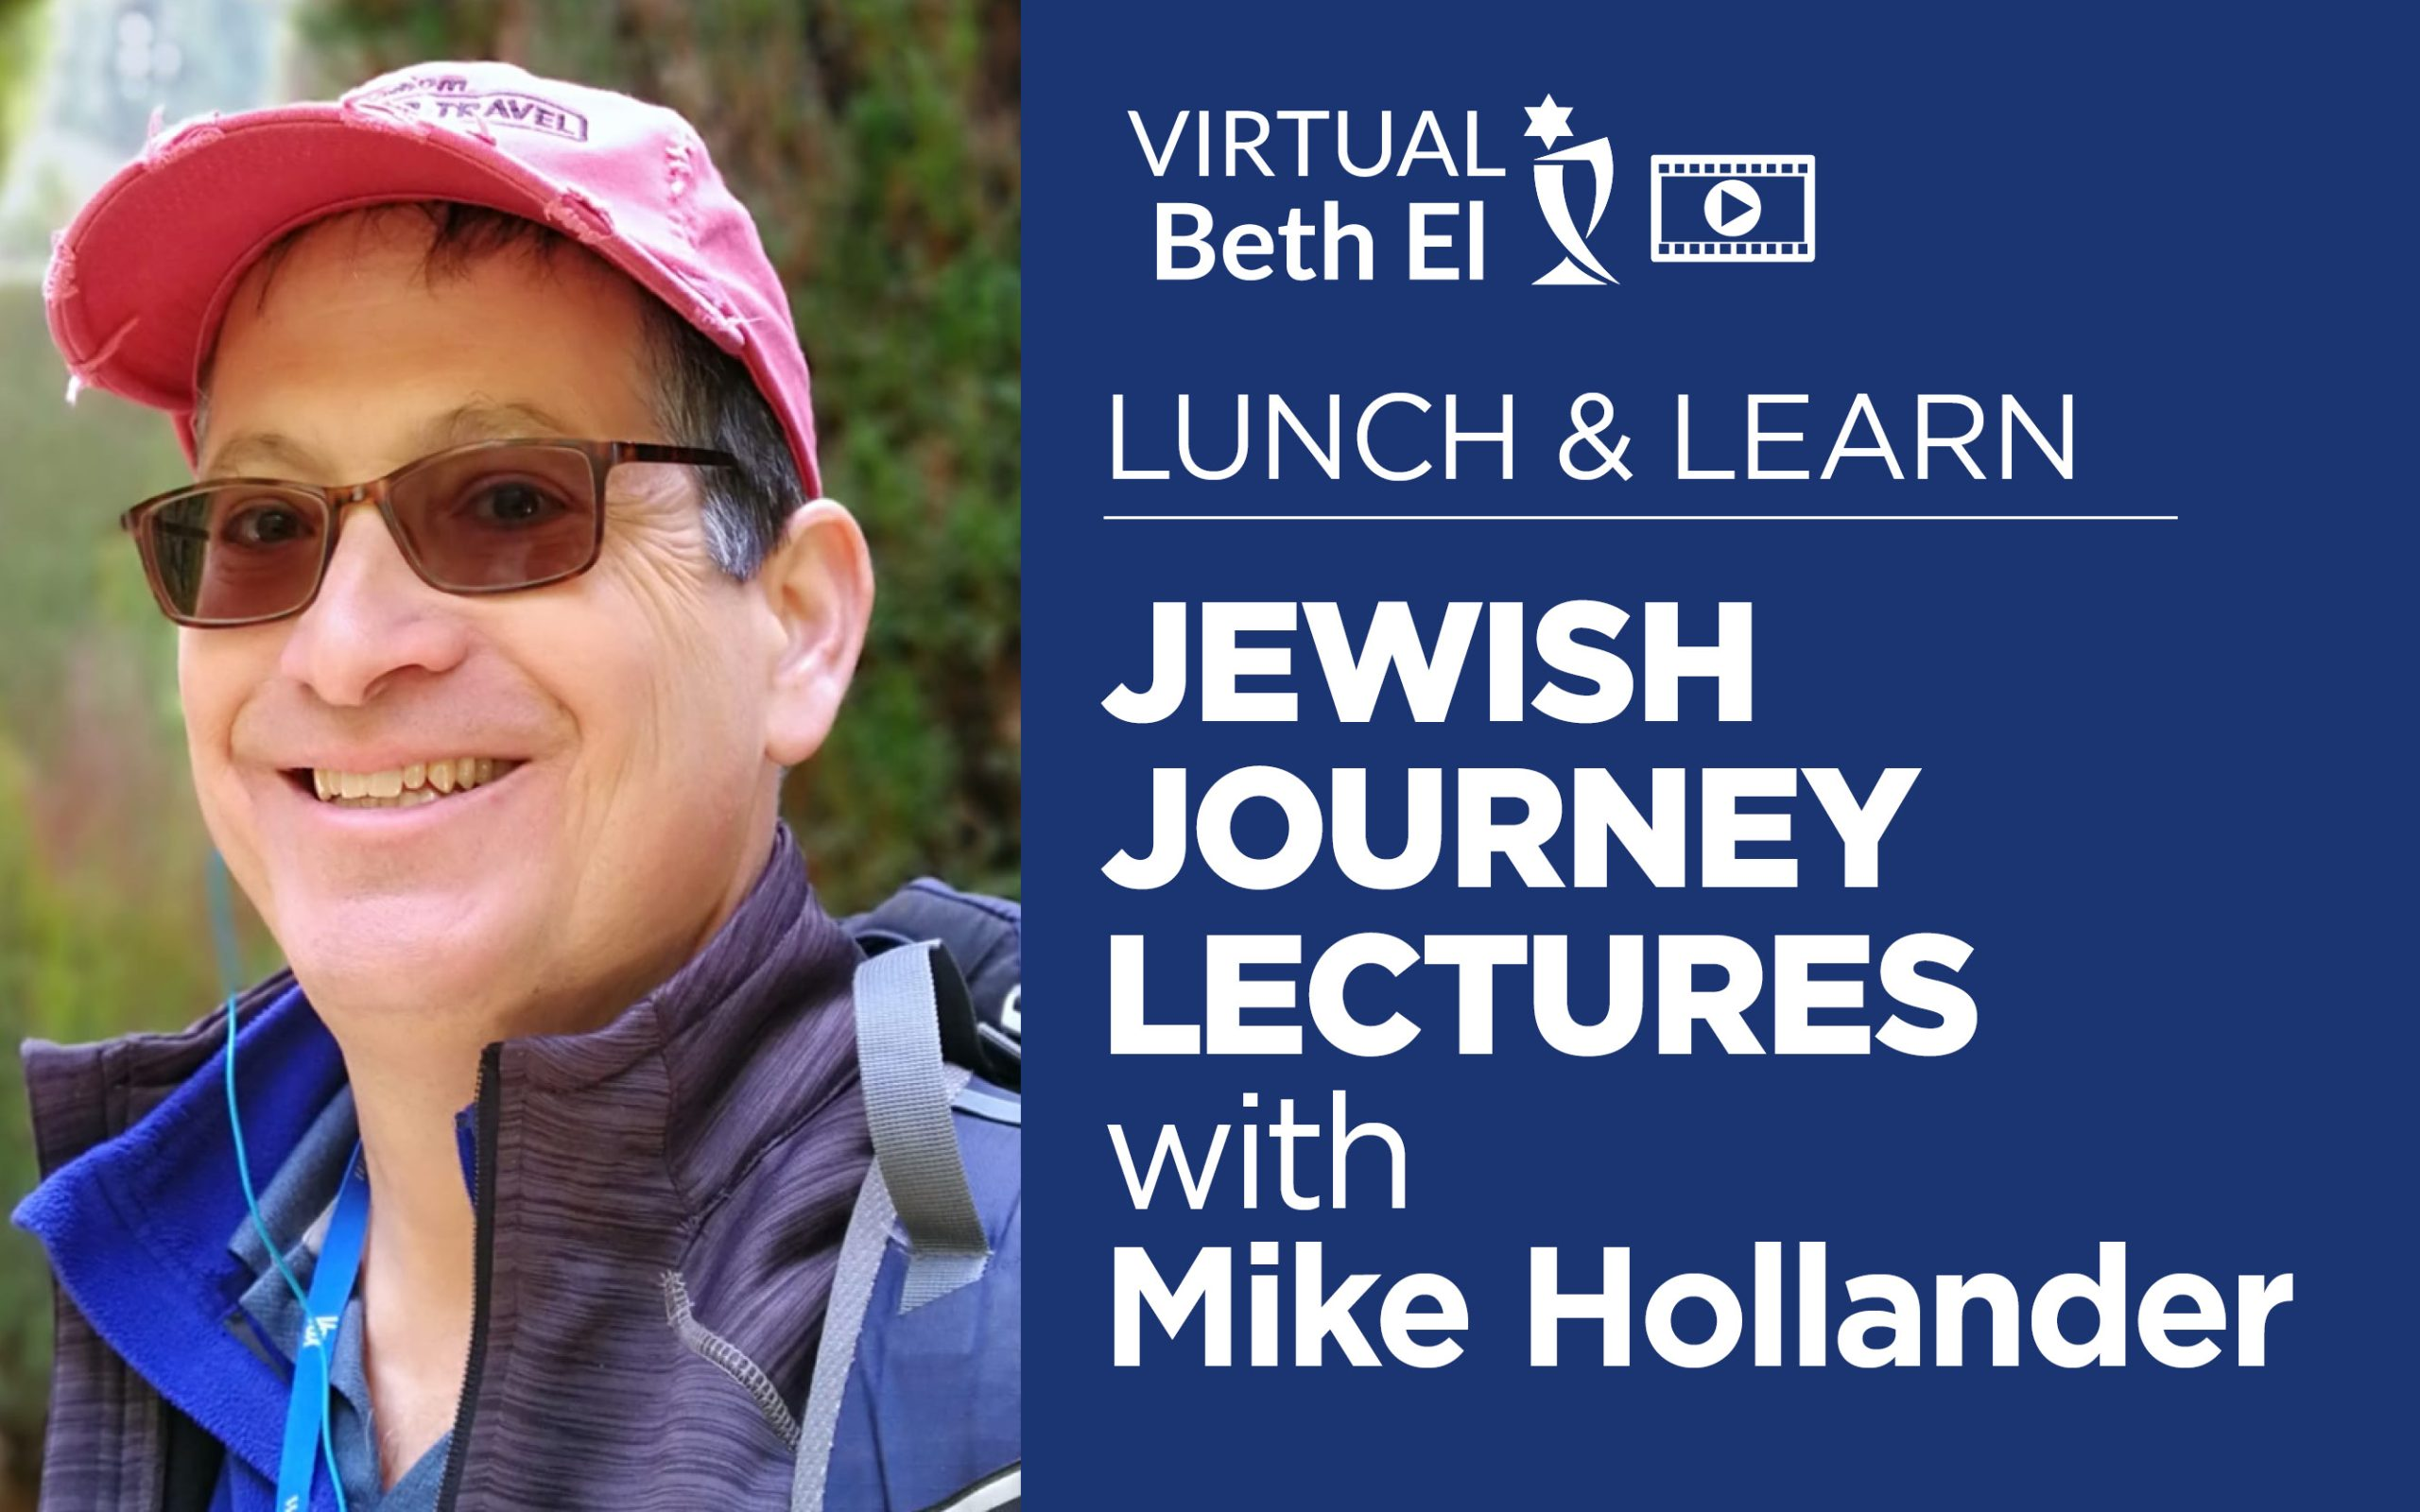 Lunch and Learn Jewish Journey Lectures with Mike Hollander event graphic for Temple Beth El, December 2021